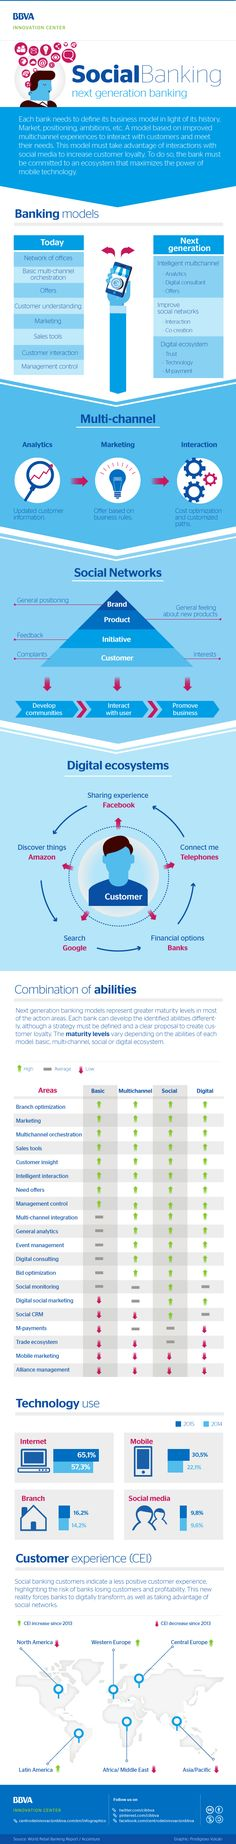 Infograph: Social Banking, next generation banking - BBVA Innovation Center